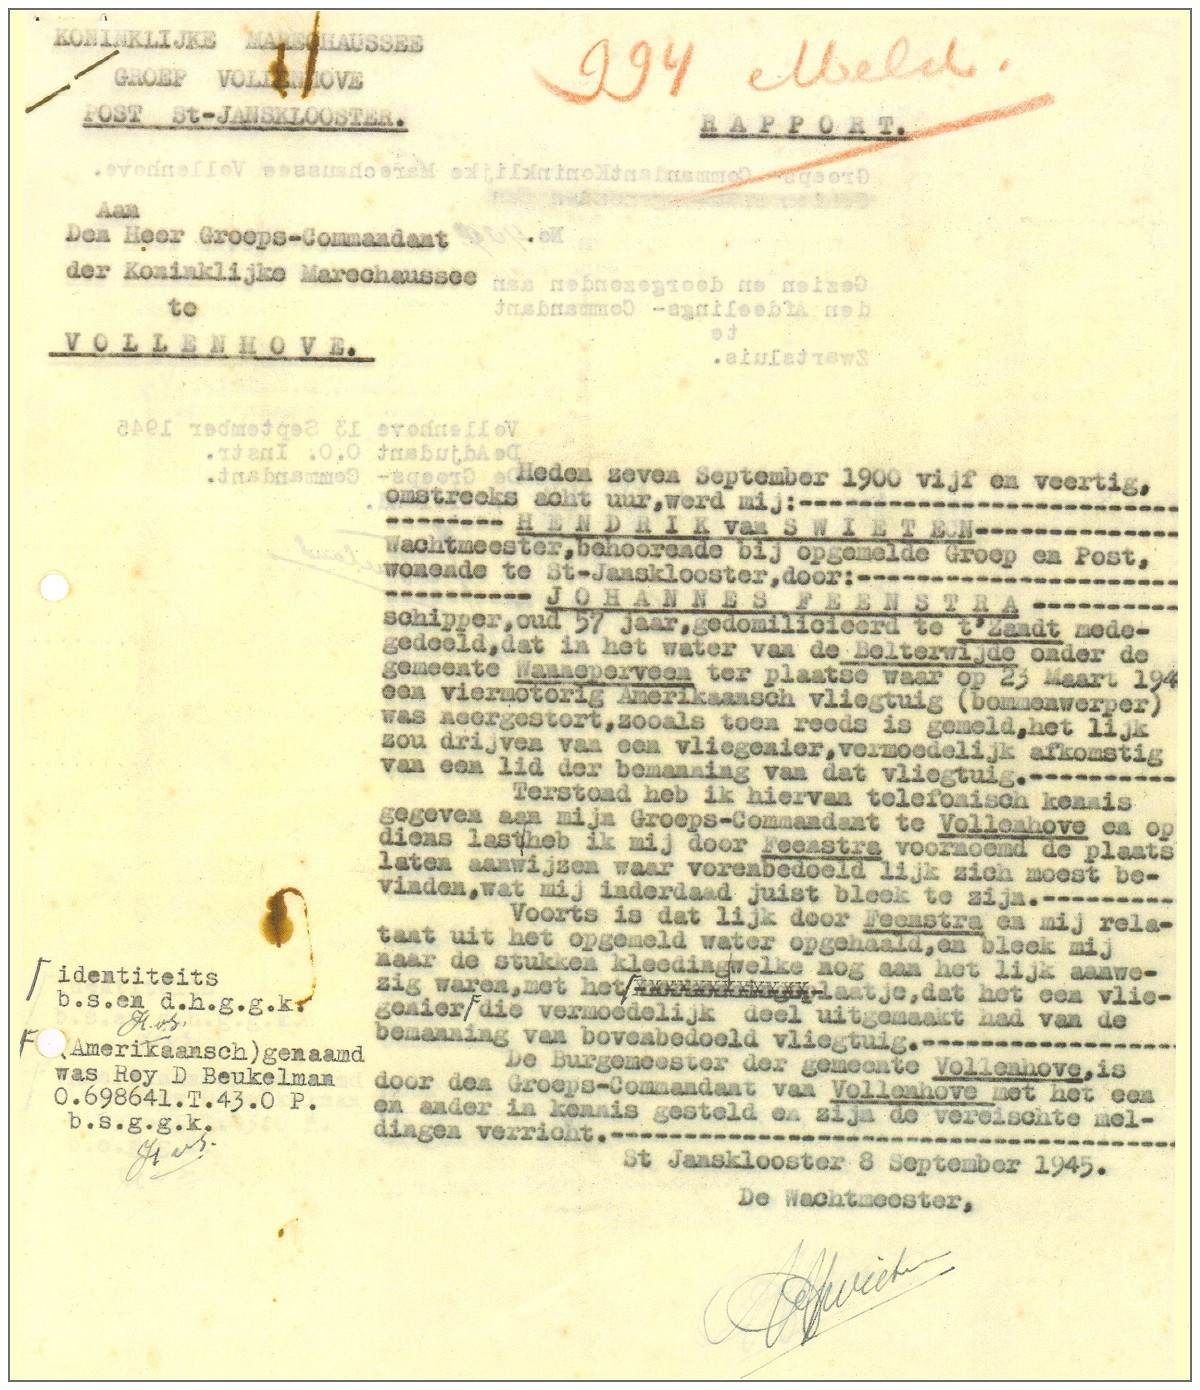 Police report - finding of floating corps 'Beukelman' in lake - 07 Sep 1945